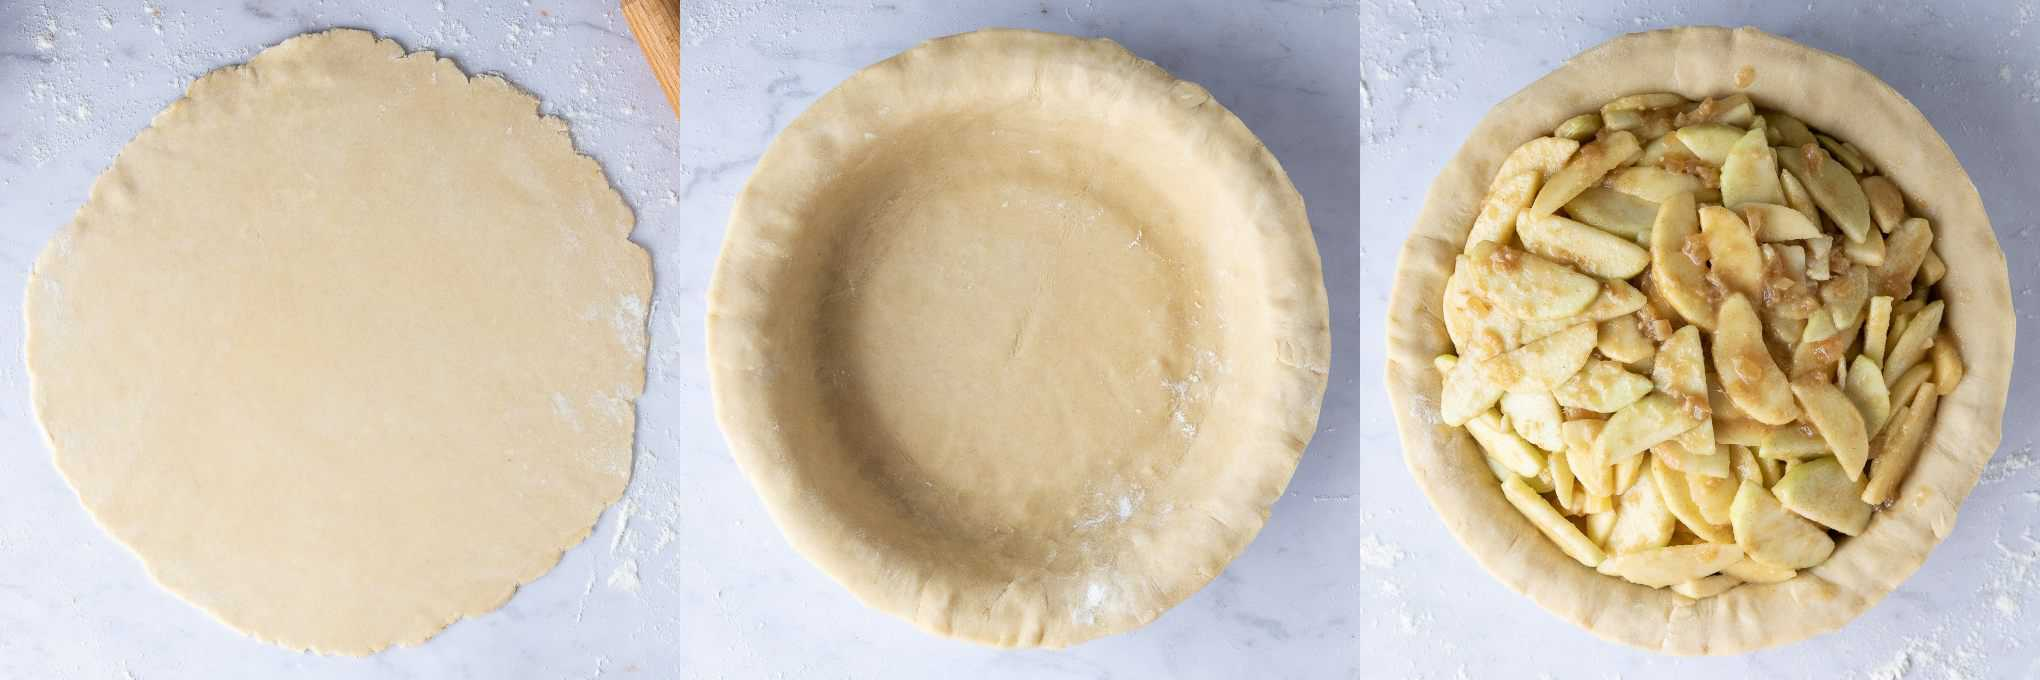 step 3 - lining the pie dish and adding the filling.